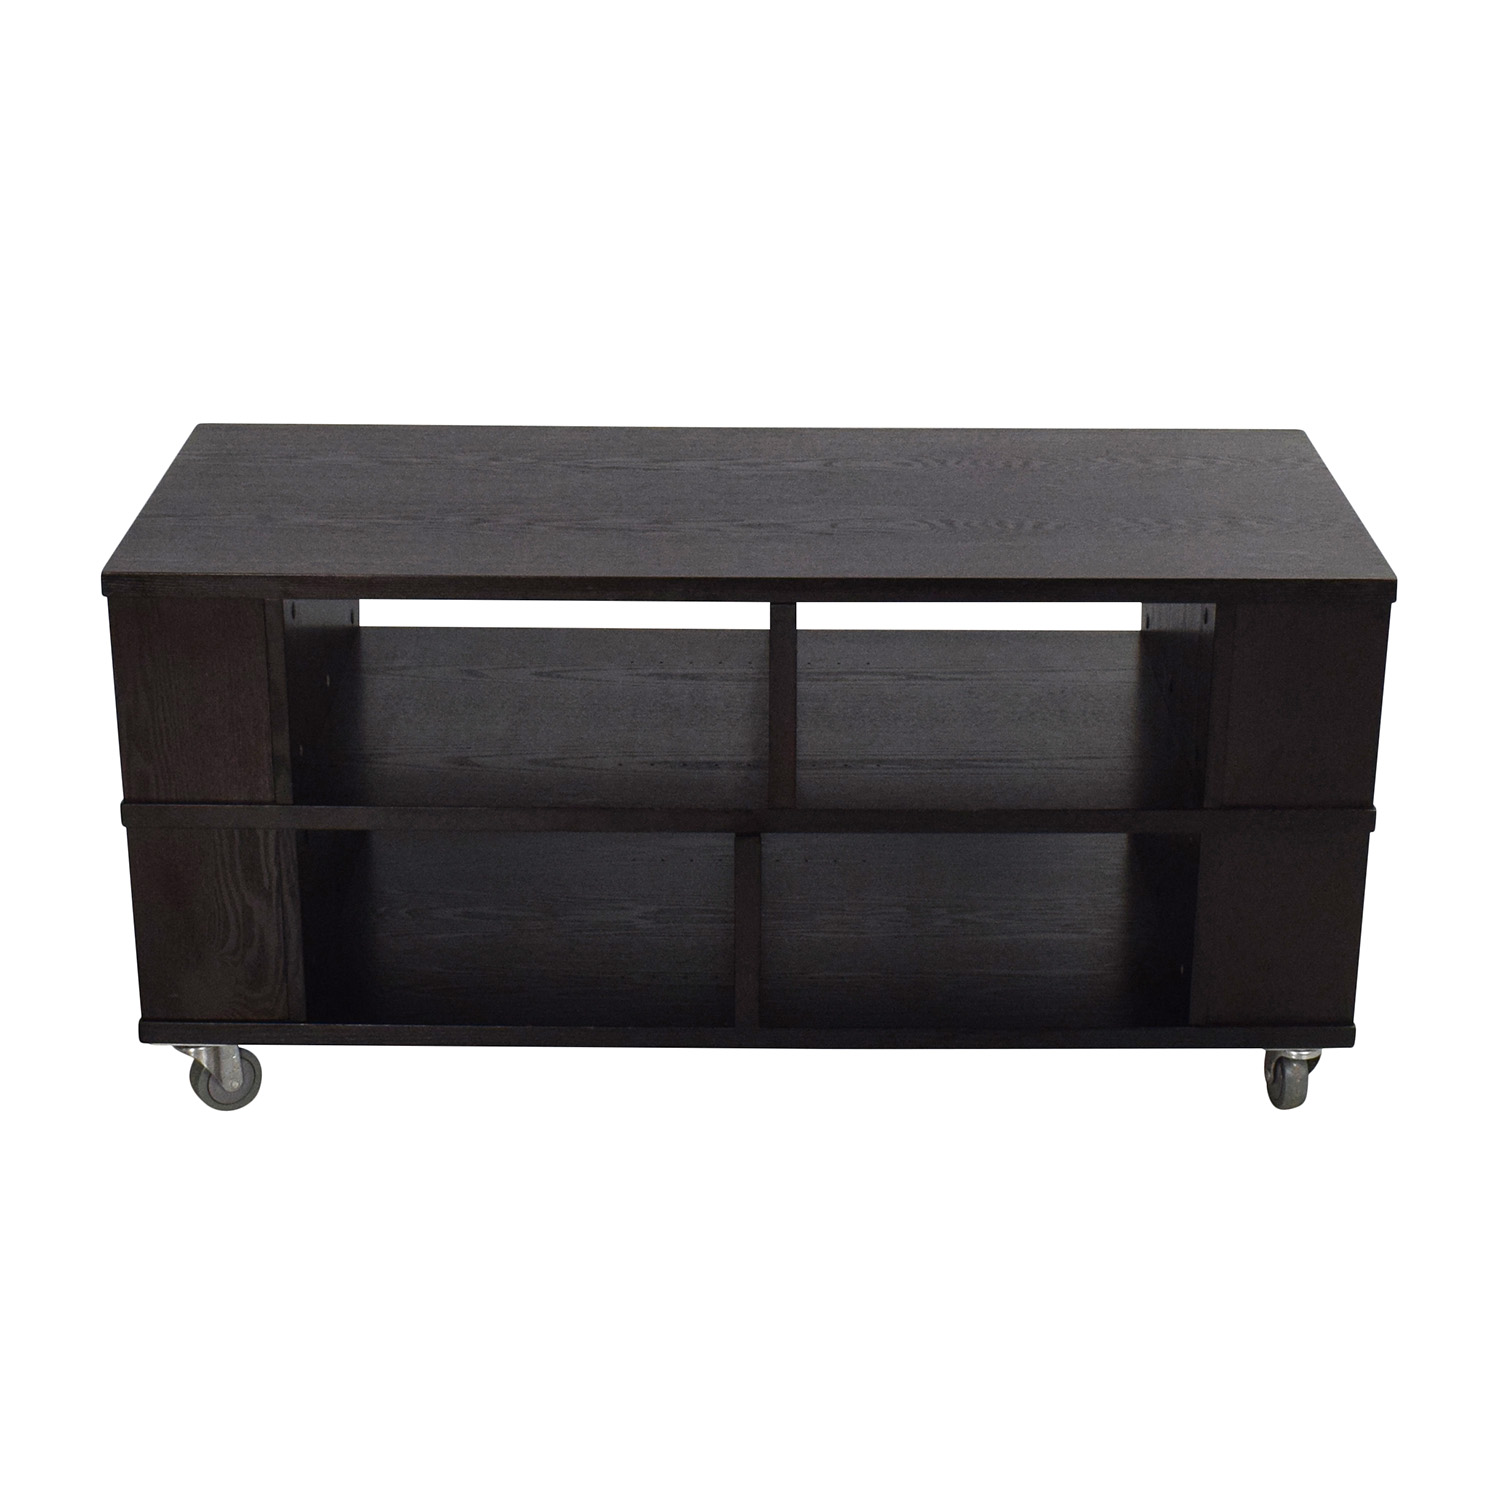 Crate and Barrel Crate & Barrel Elements Media Cart Console Storage